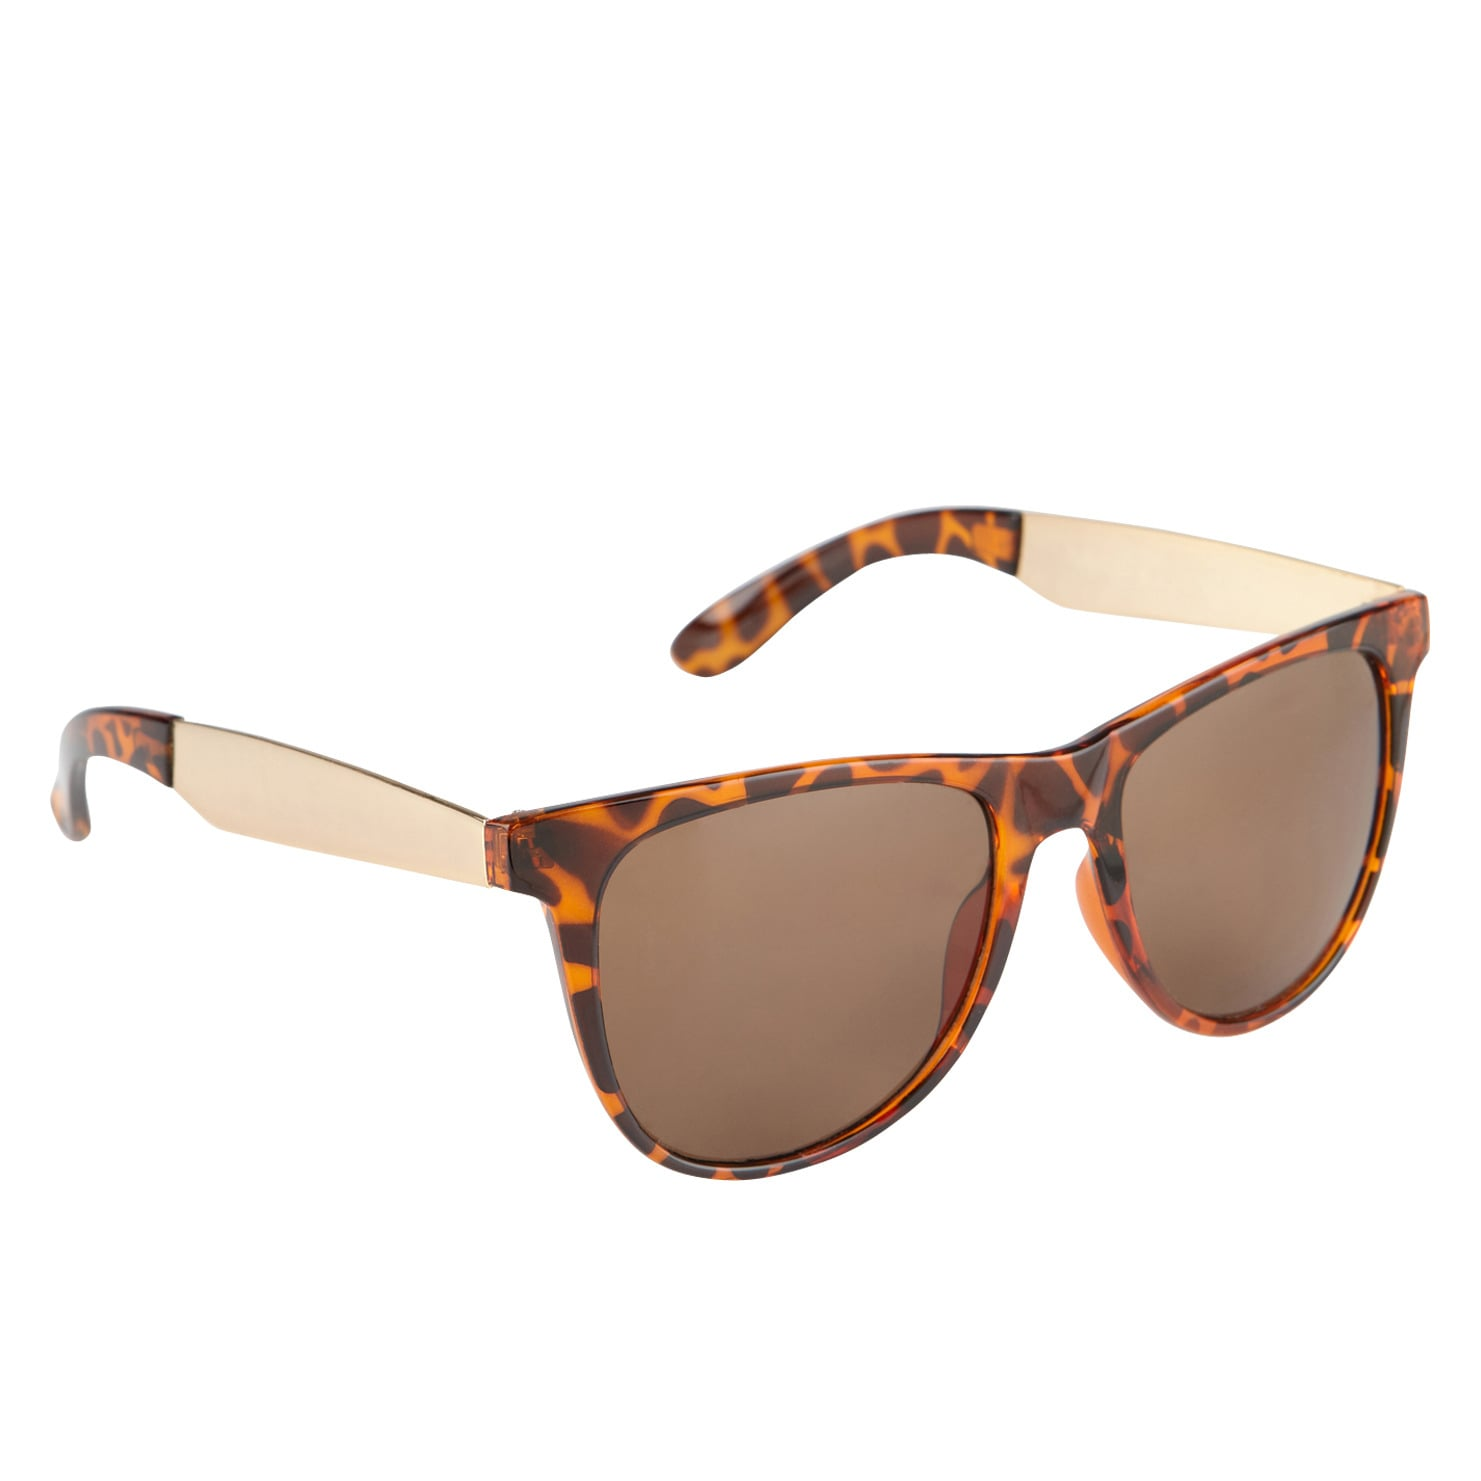 Try a touch of leopard like this gold and tortoise Aldo pair ($12).